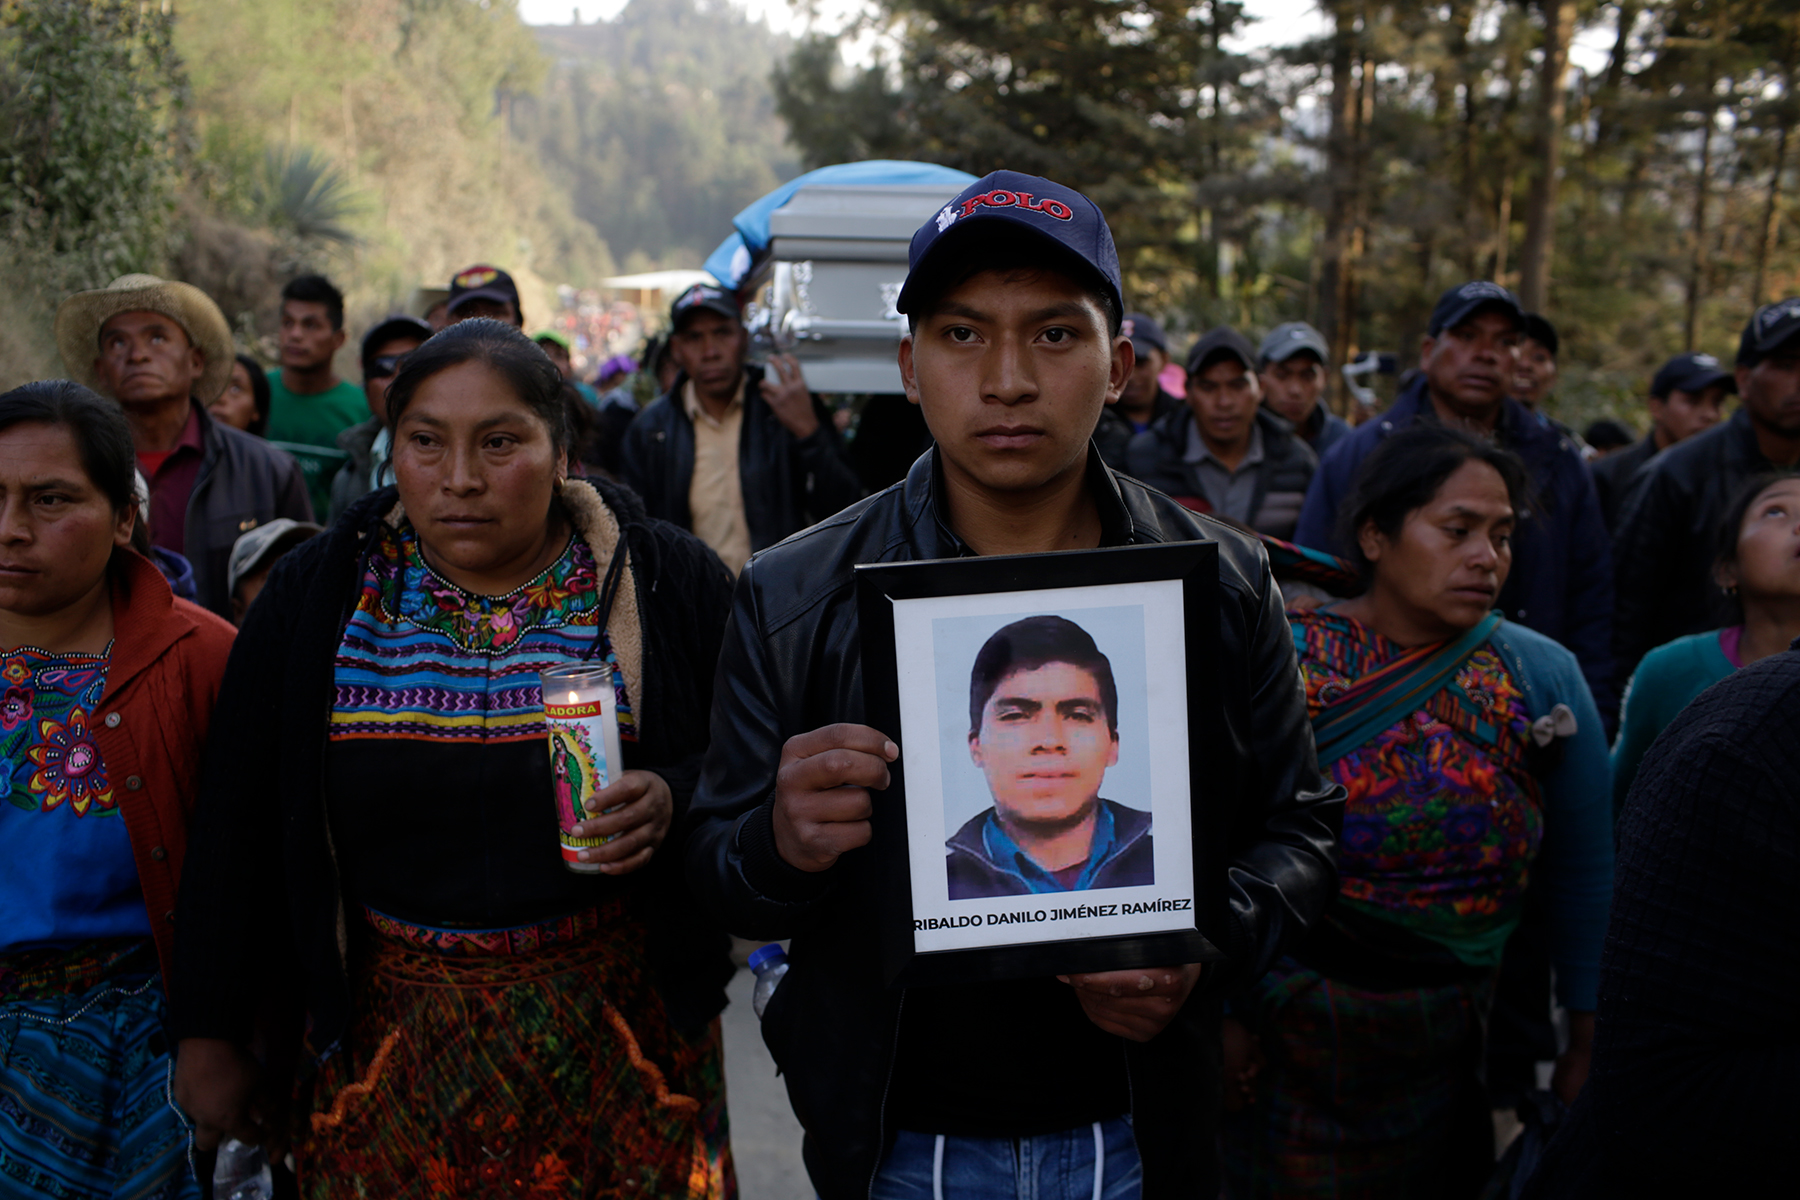 TUILELÉN, COMITANCILLO, GUATEMALA - MARCH 14: Angel Mauricio cousin of Rivaldo Danilo Jimenez holding his picture on March 14, 2021 in Comitancillo, Guatemala. 19 shot and charred bodies were found in two trucks on January 22, 2019 along the Mexican-American border town of Camargo in Tamaulipas. 16 of them were undocumented Guatemalan migrants seeking to reach the United States. 12 Mexican police officers of the elite GOPE group remain detained, accused of murder, abuse of authority and filing fraudulent reports. (Photo by Josue Decavele /Getty Images)